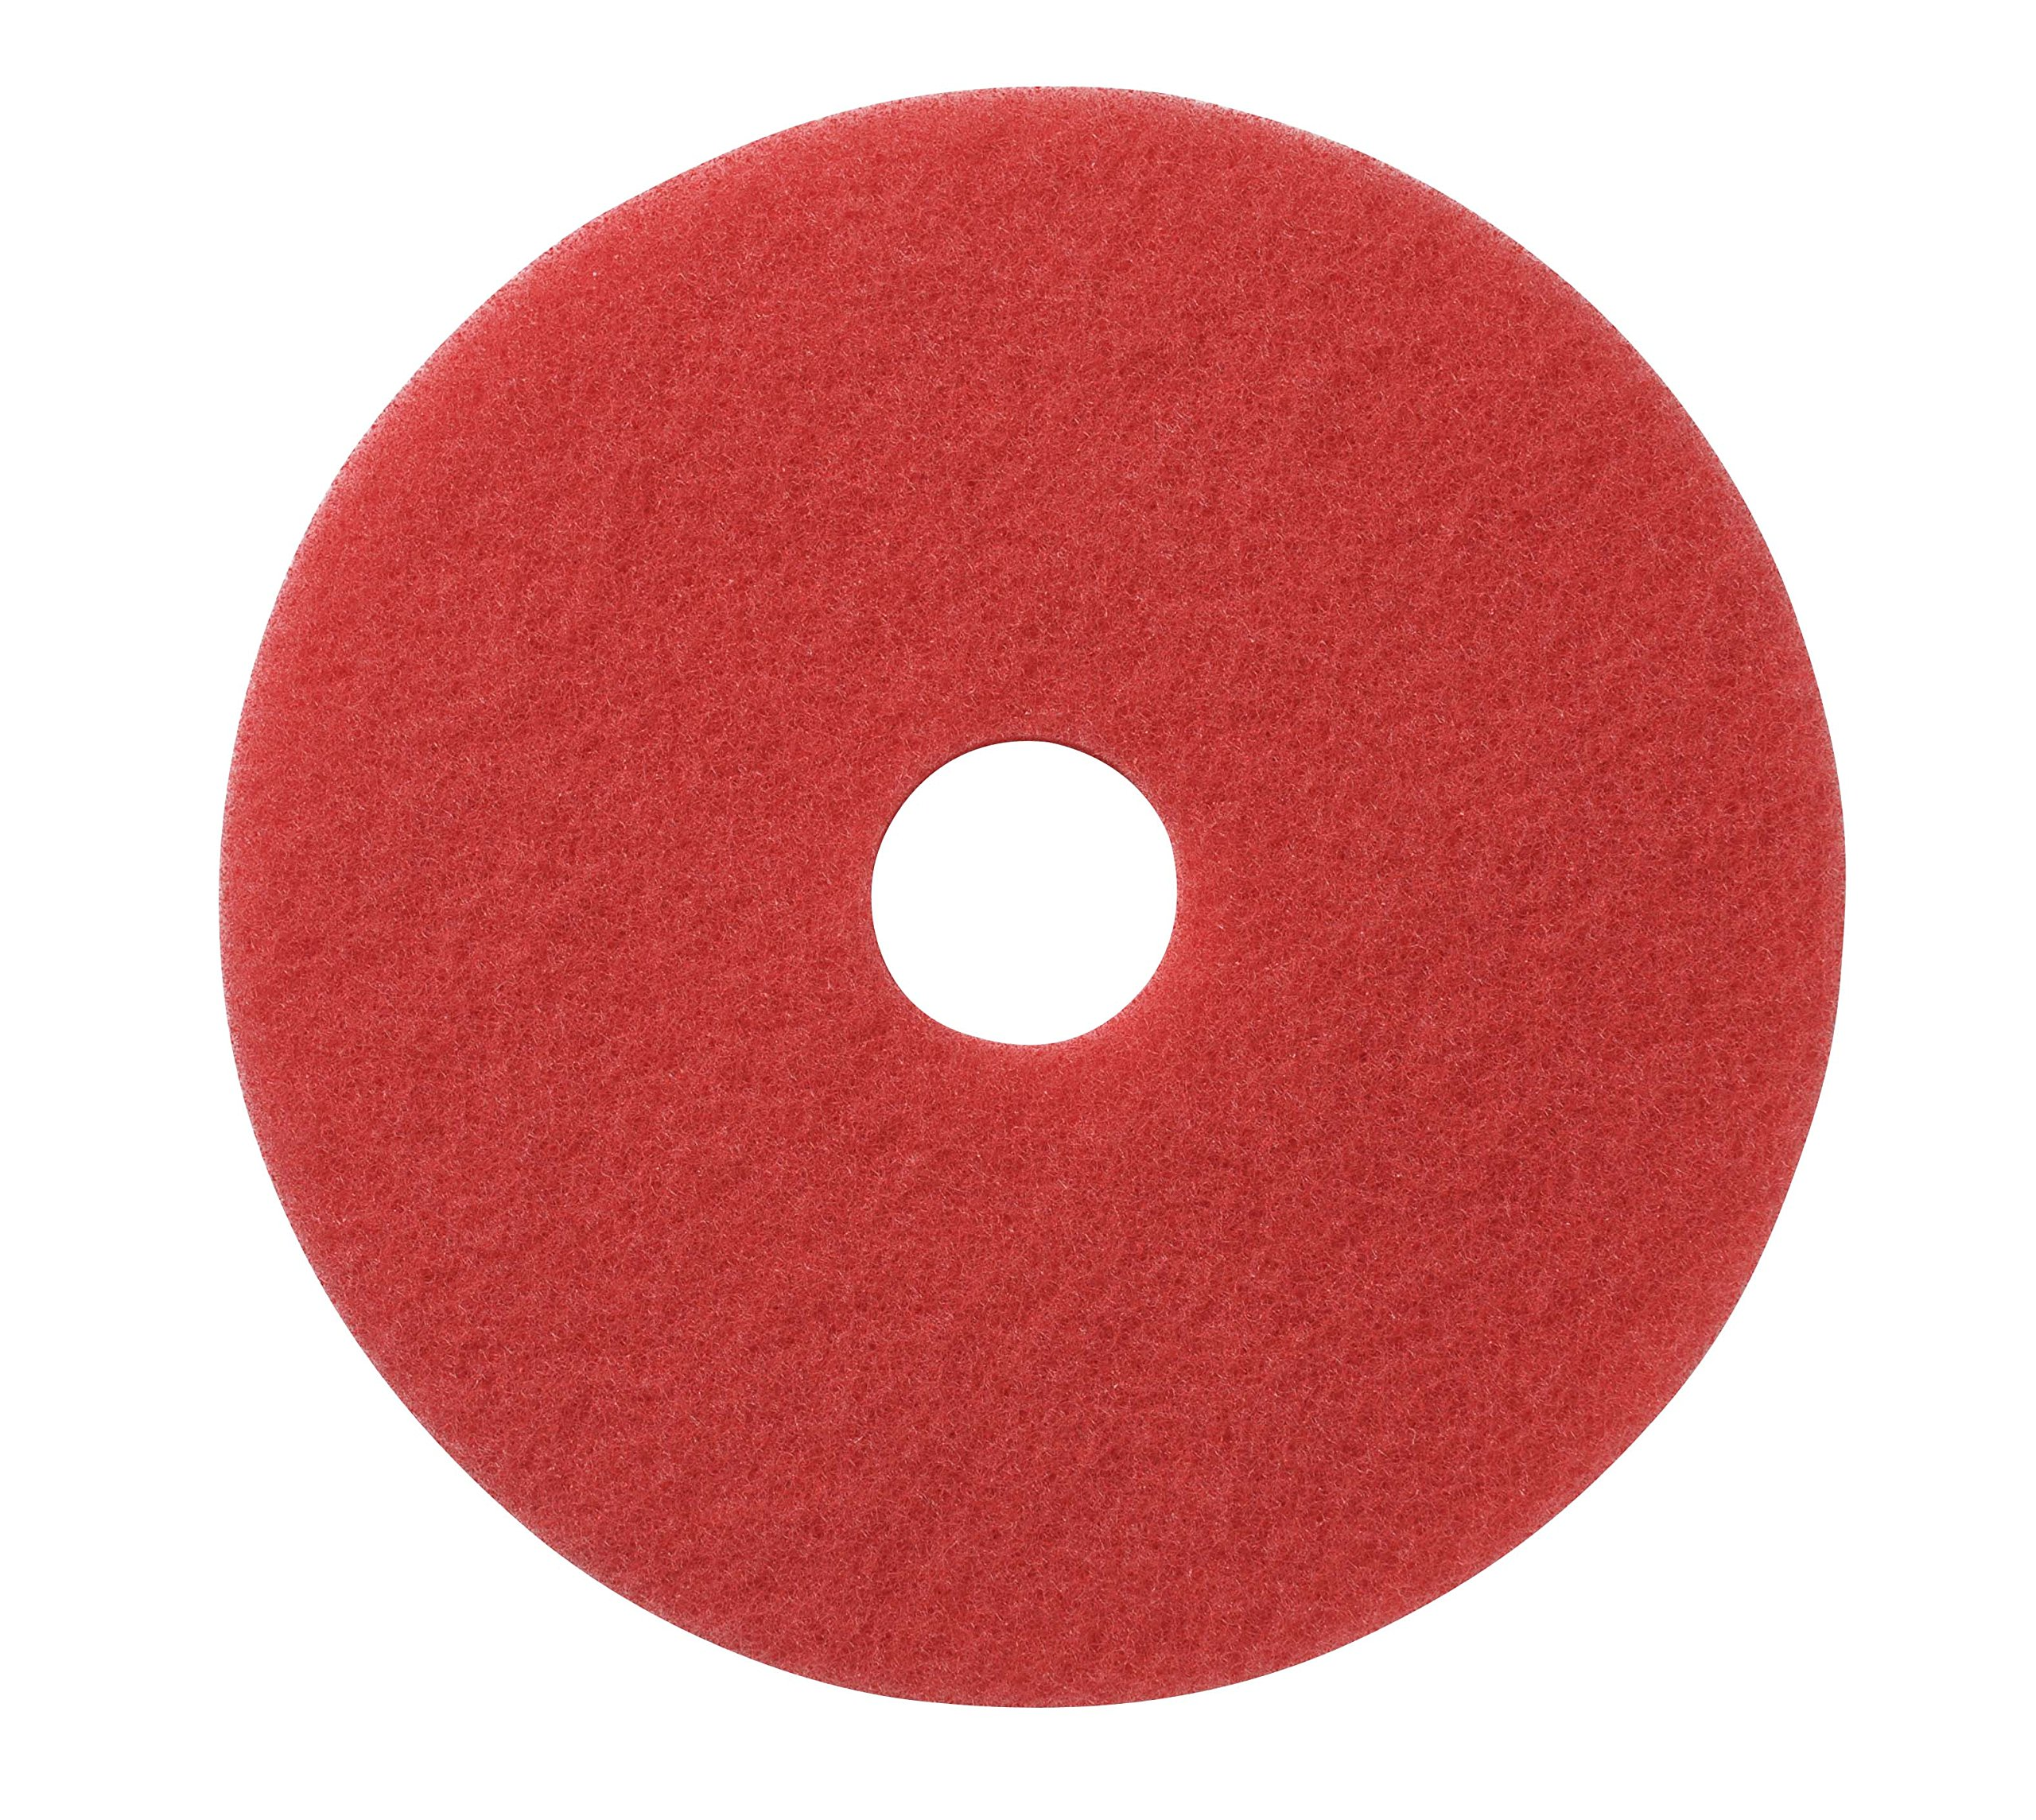 Glit / Microtron 404413 Daily Cleaning and Buffing Pad, 13'', Red (Pack of 5)